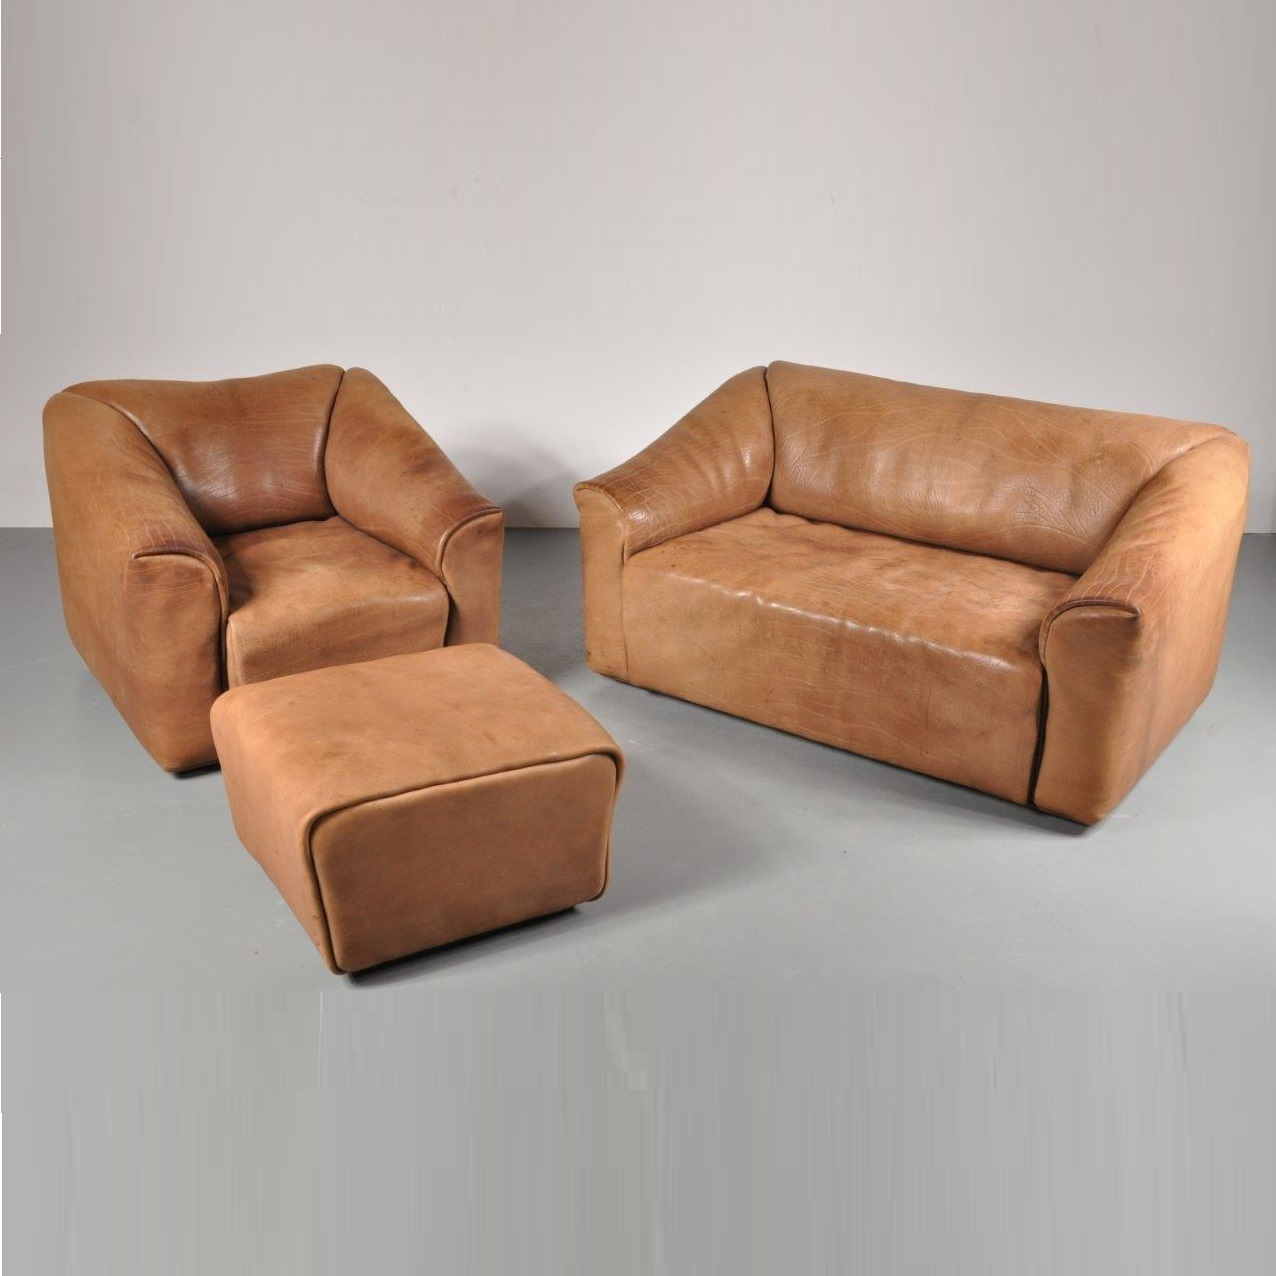 1970s DS-47 living room set by De Sede, Switzerland in cognac coloured thick neck leather